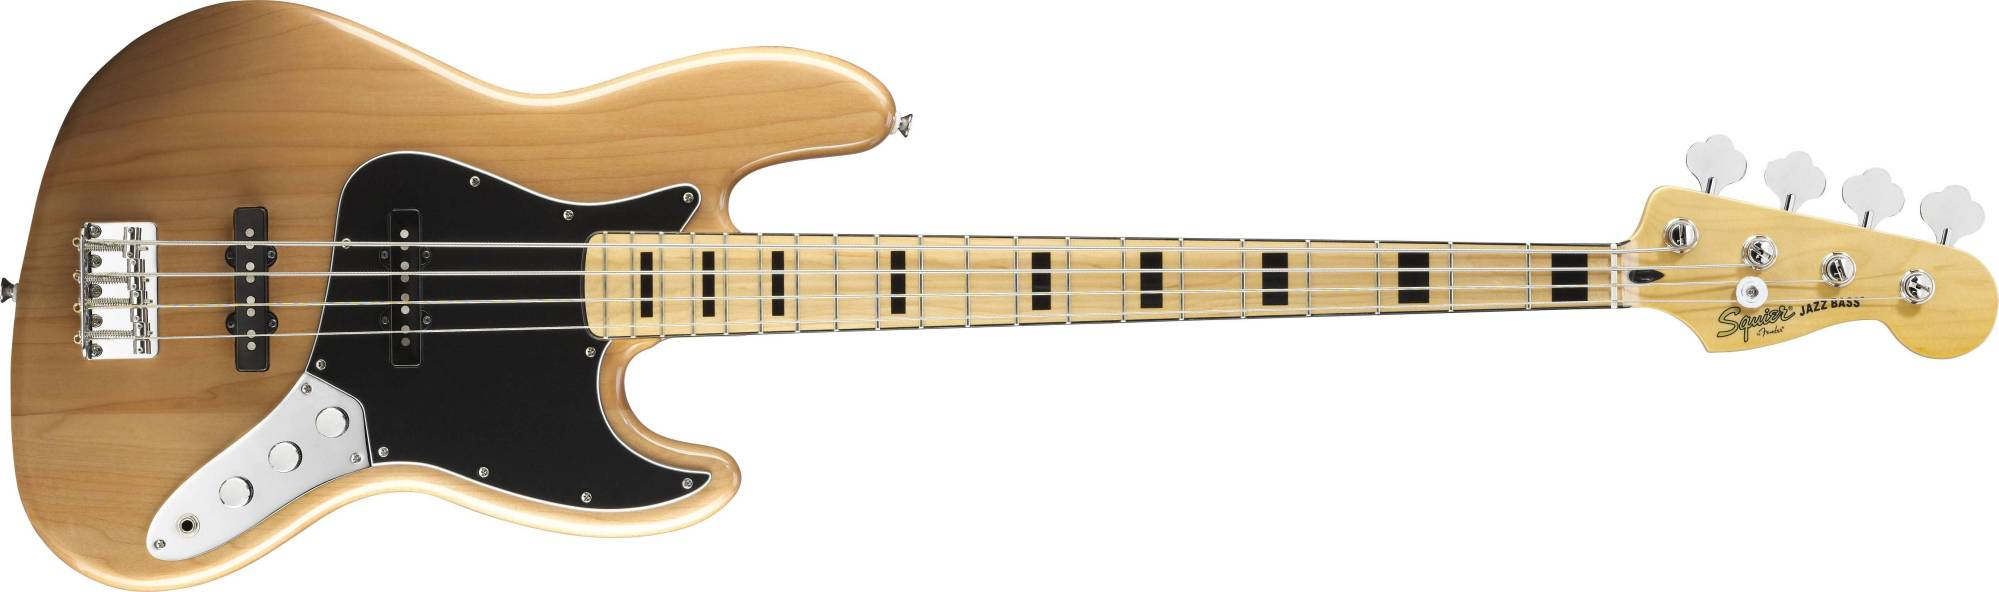 hight resolution of squier vintage modified jazz bass 70s natural long mcquade musical instruments